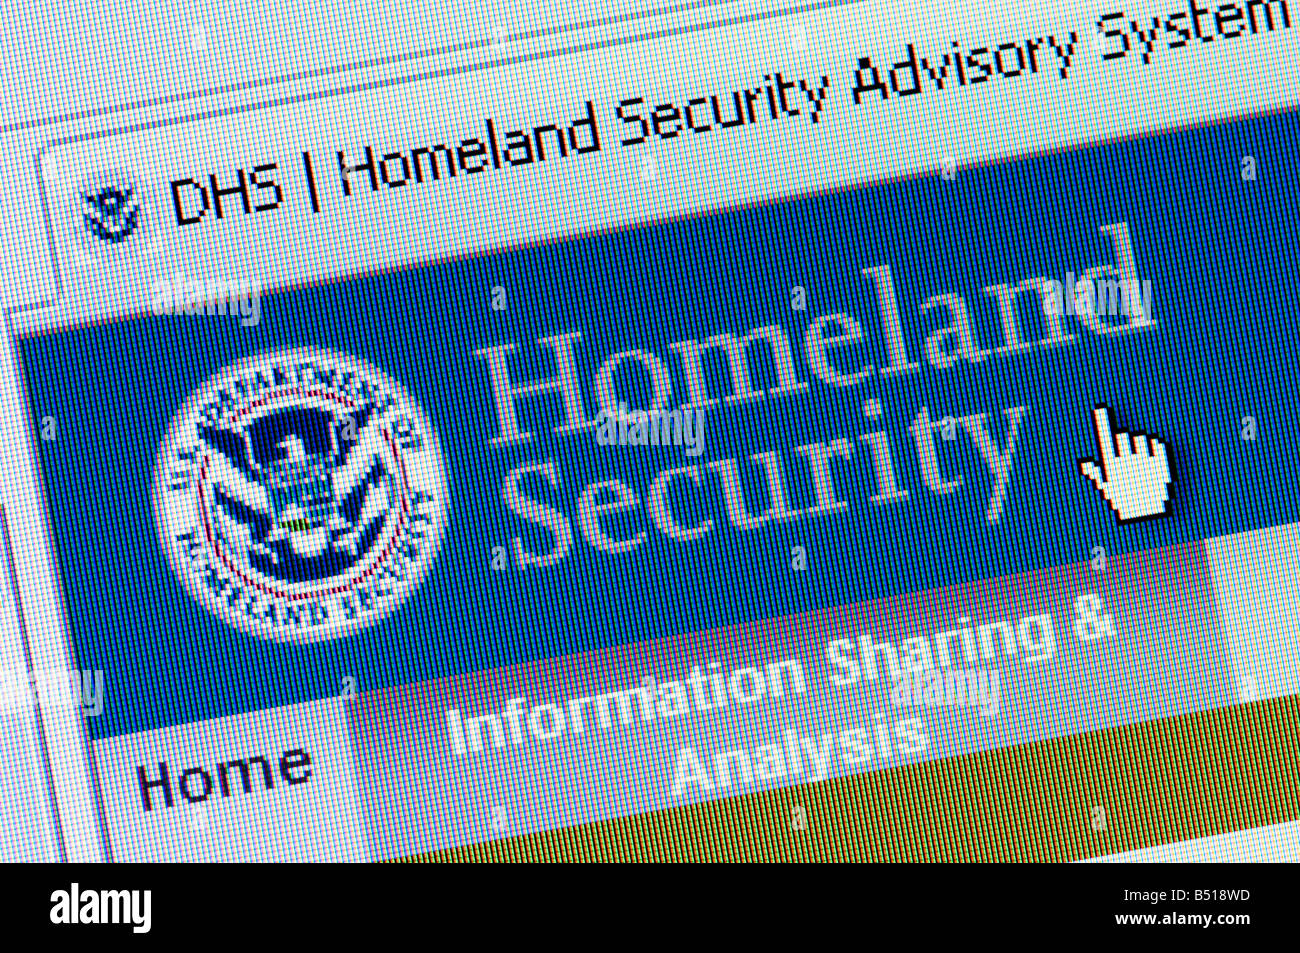 Macro screenshot of Department of Homeland Security website Editorial use only Stock Photo